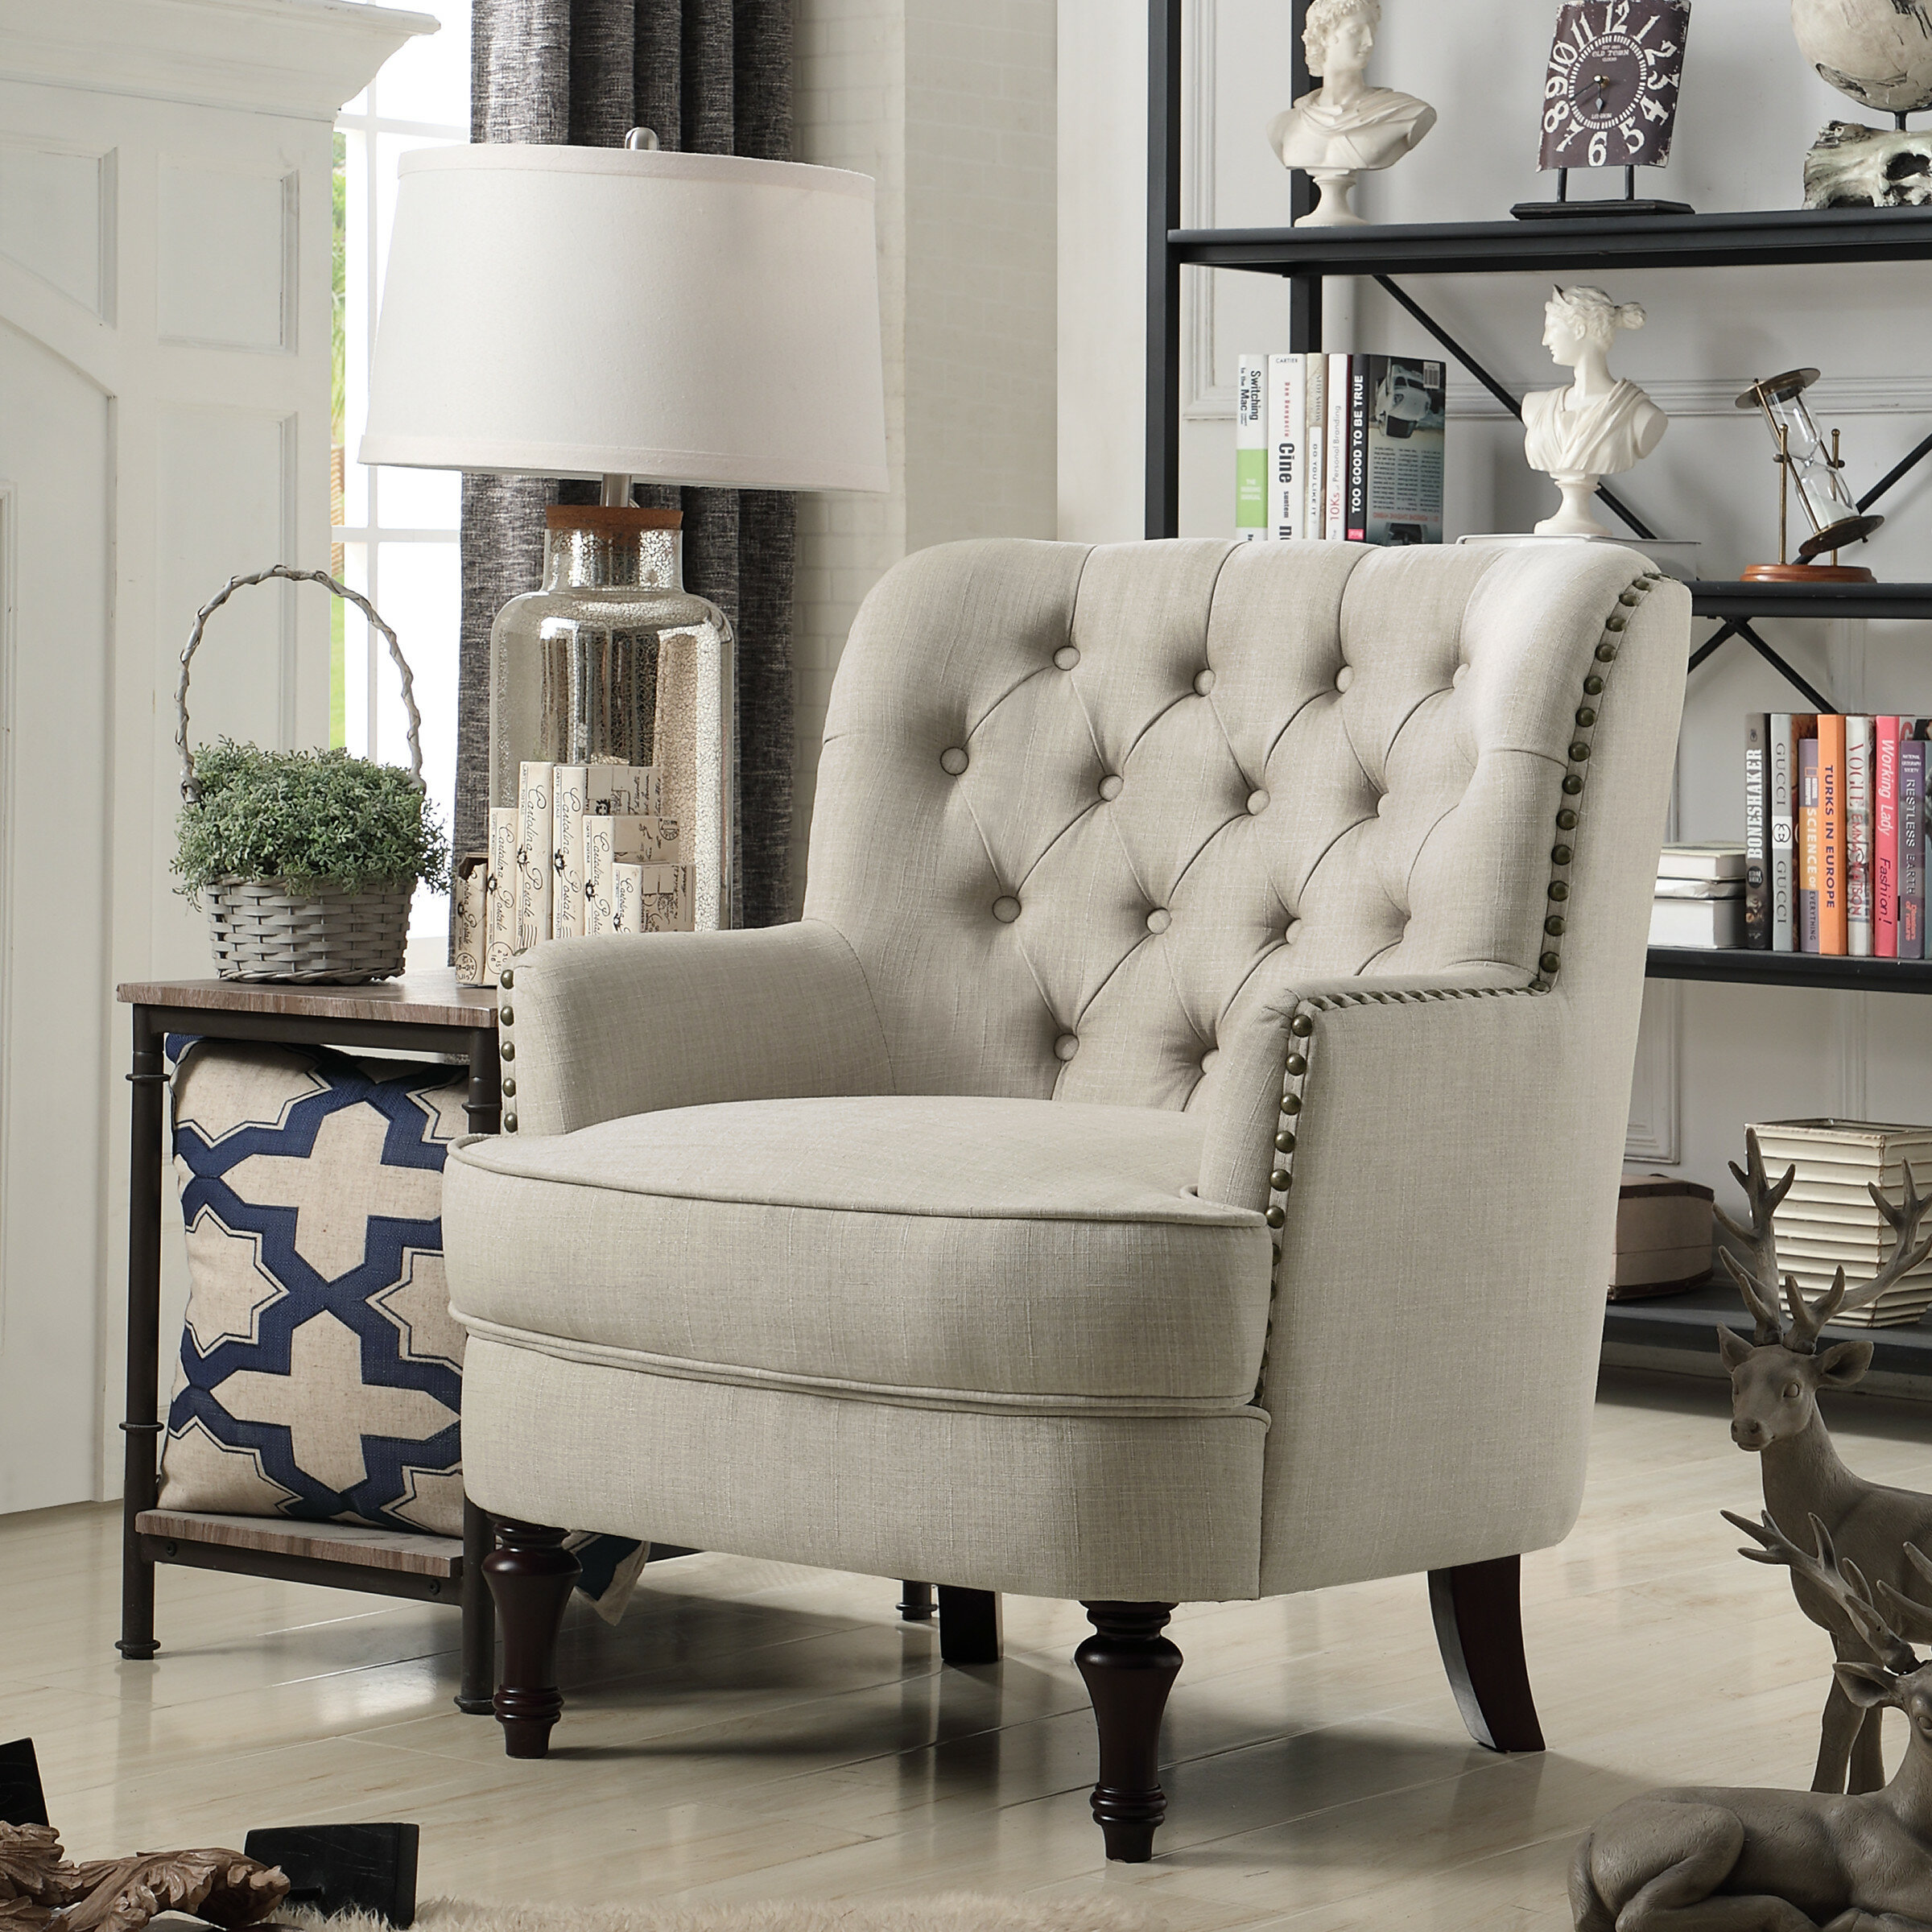 & Darby Home Co Jagger Arm Chair u0026 Reviews | Wayfair